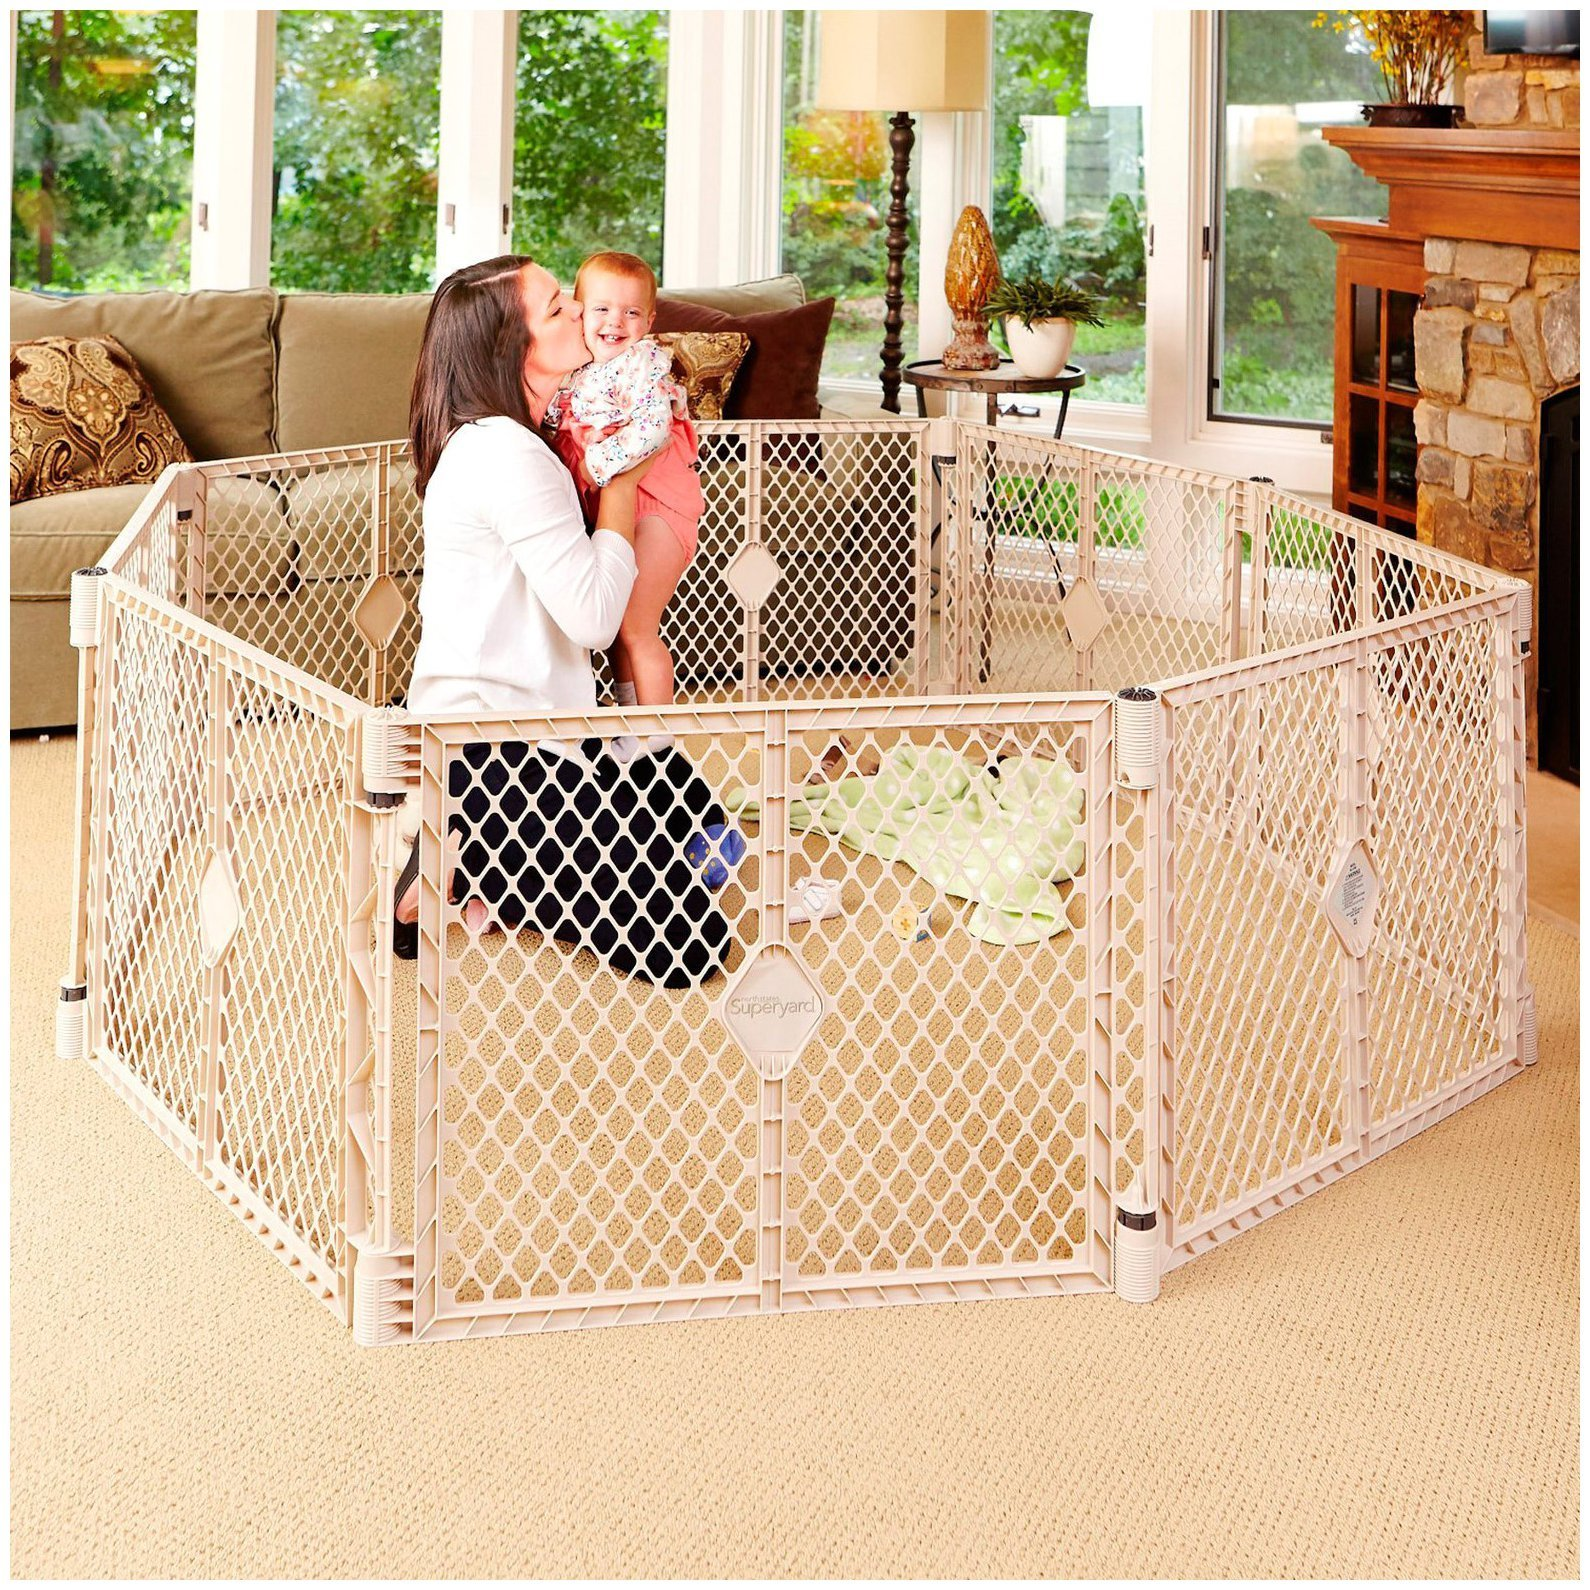 North States Industries Superyard Xt Gate | North States Superyard | Kids Playpen Walmart